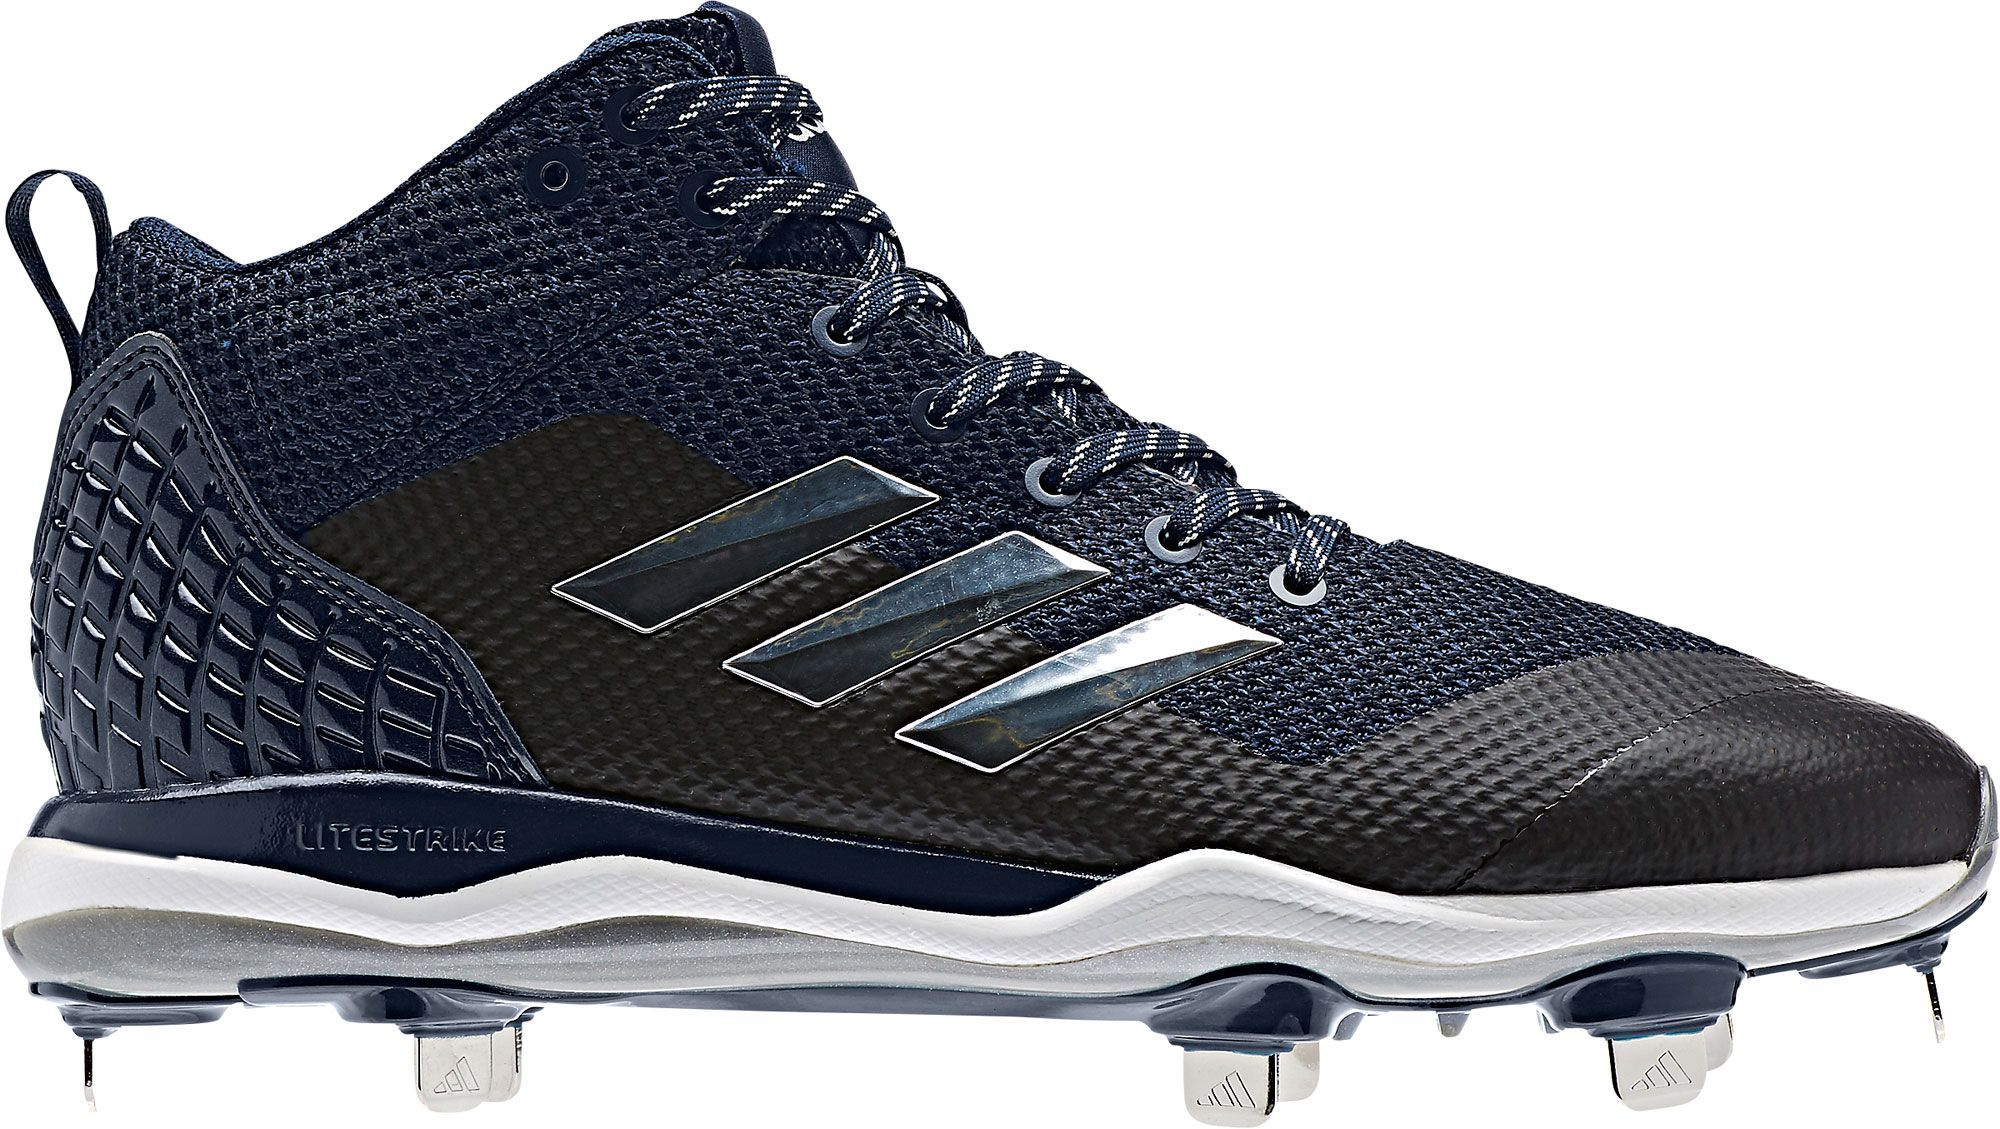 c02c402b6d3 adidas Men s Poweralley 5 Mid Metal Baseball Cleats